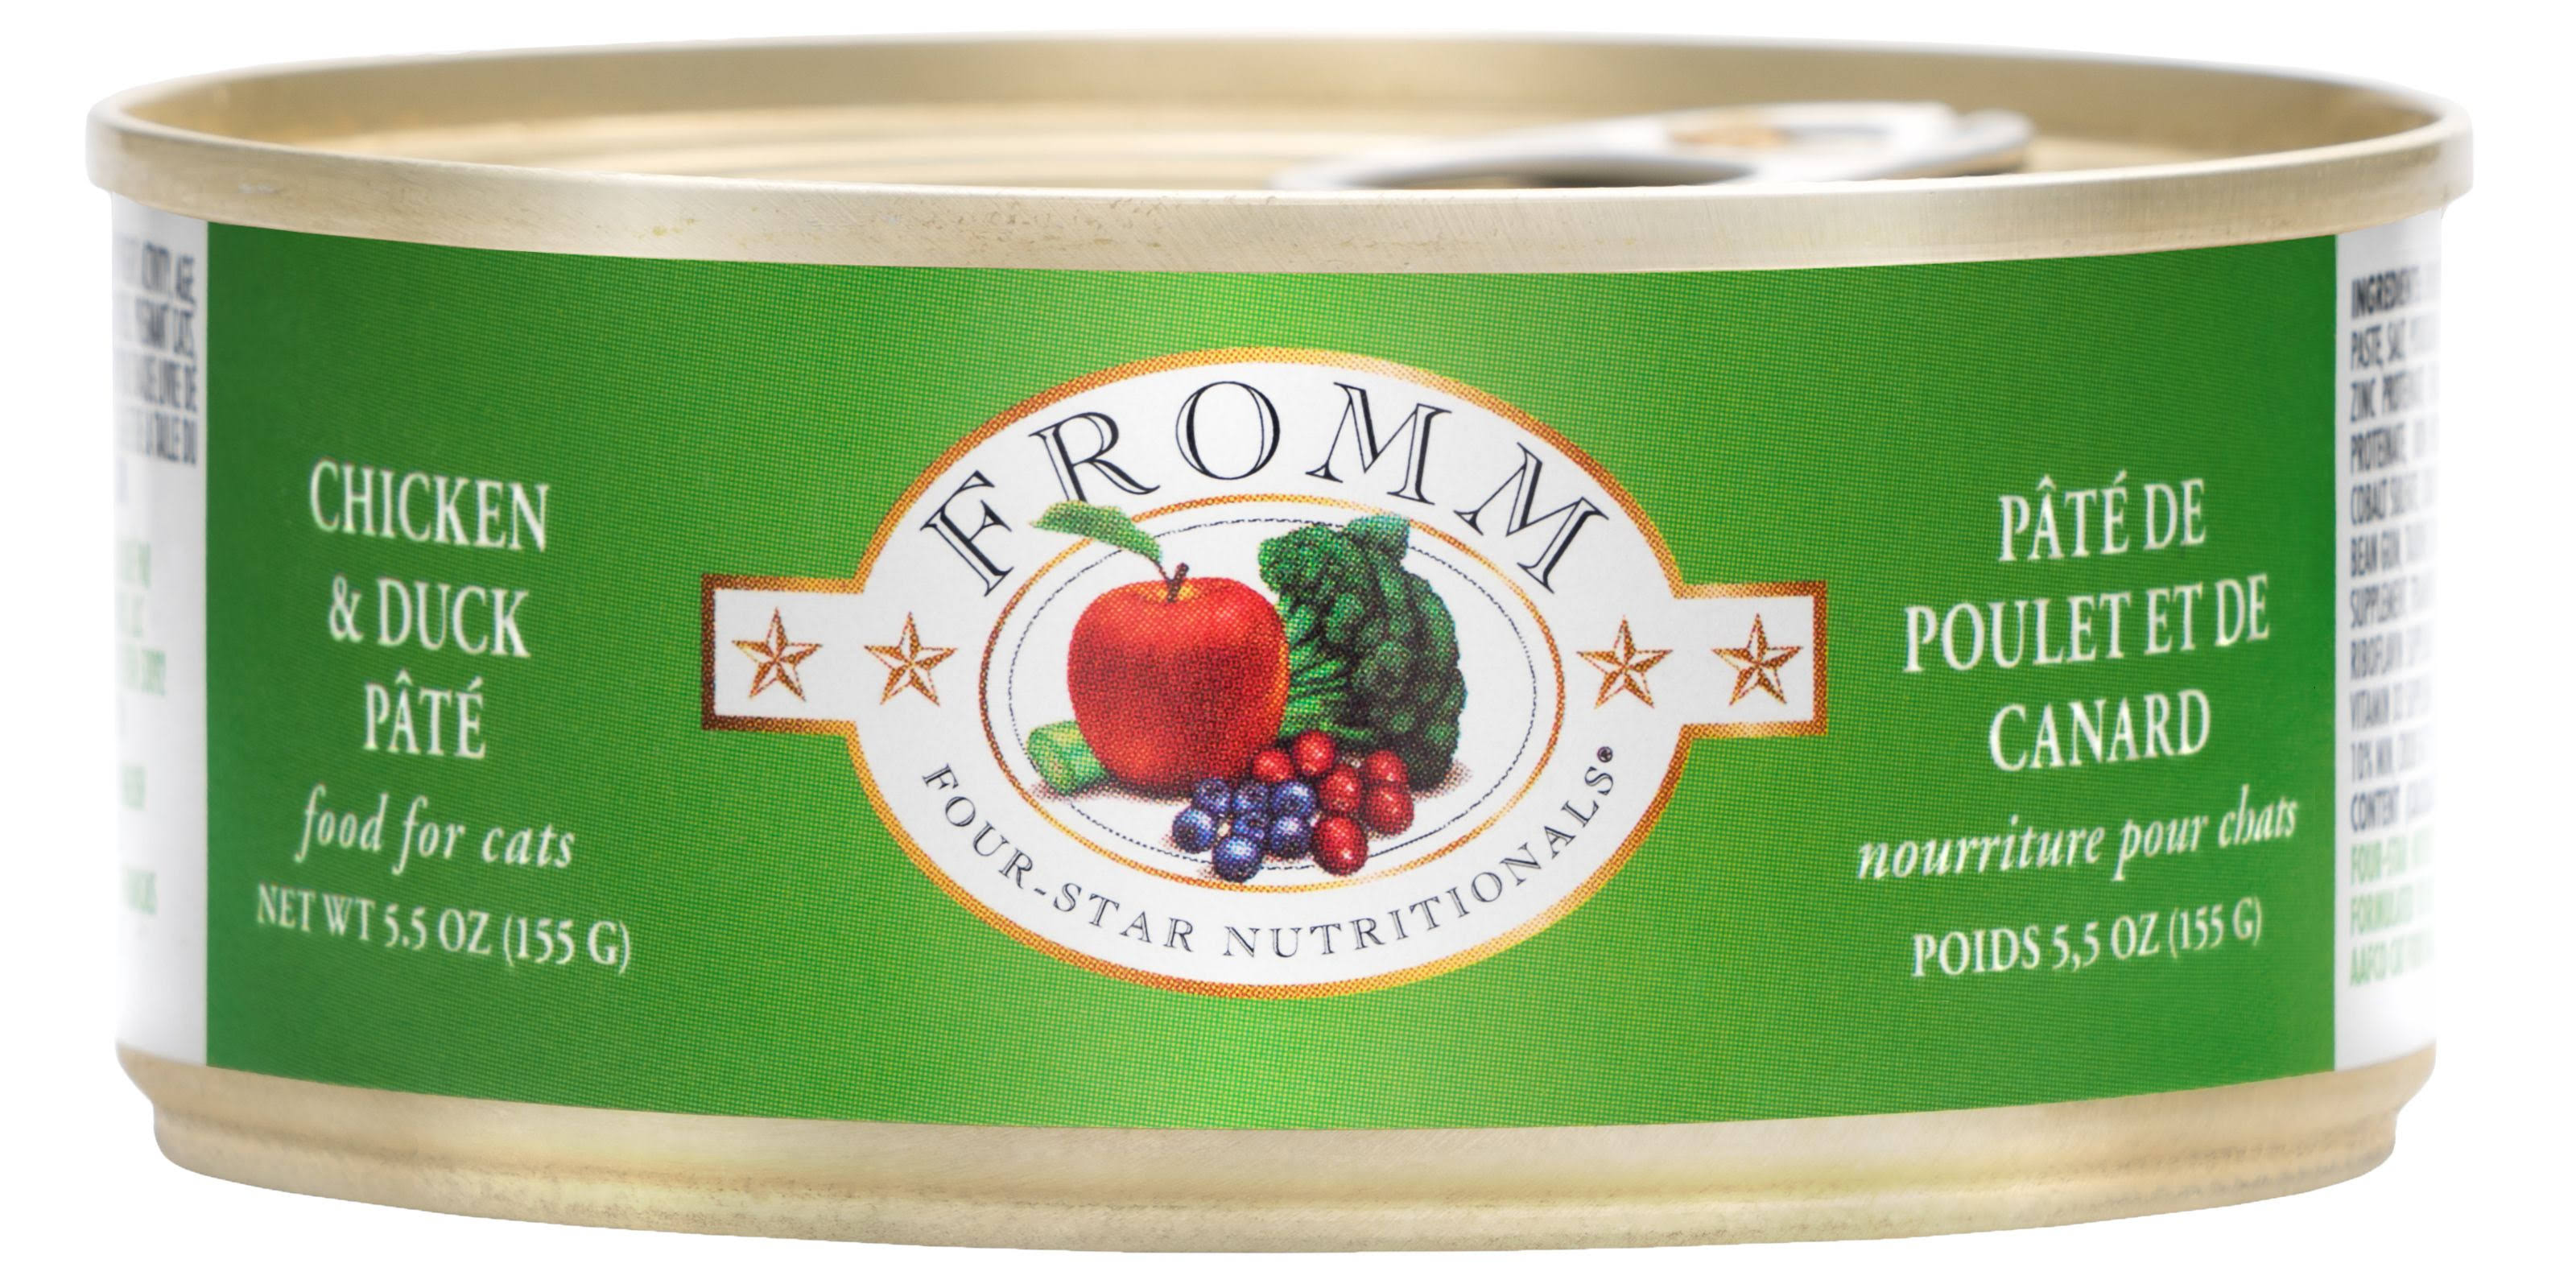 Fromm Four Star Chicken and Duck Pate Canned Cat Food 5.5 oz